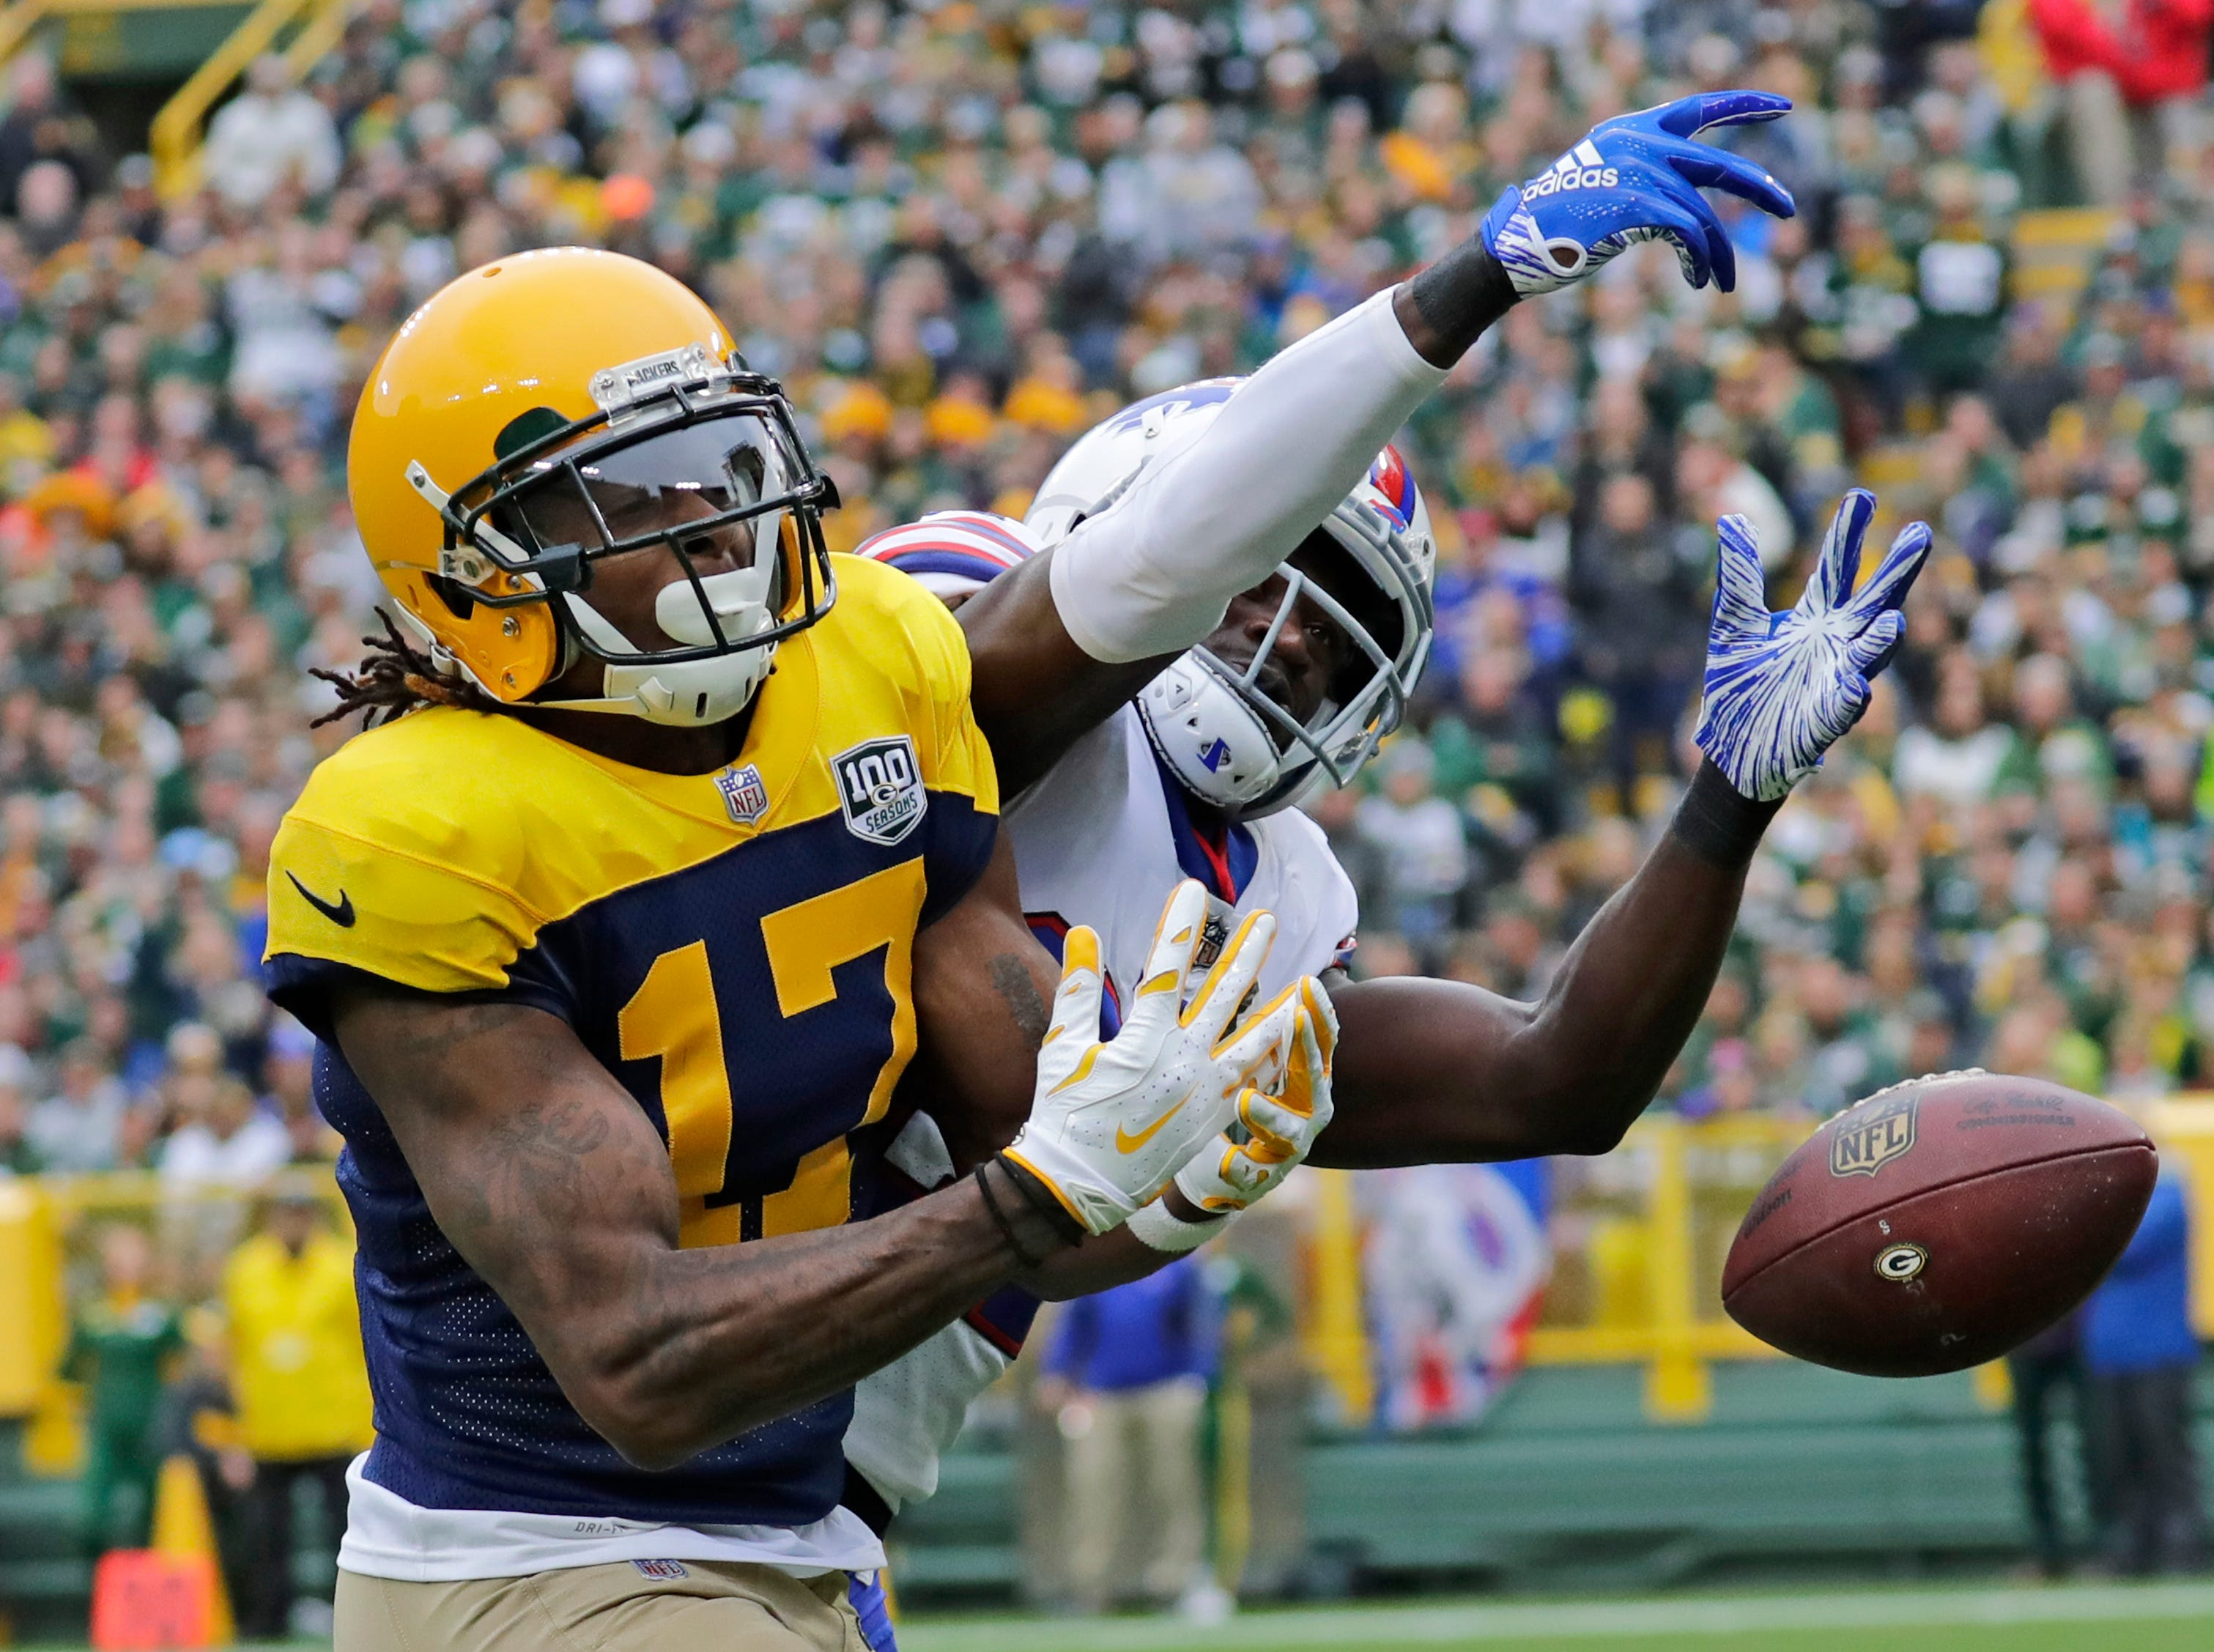 Green Bay Packers wide receiver Davante Adams (17) drops a pass in the end zone against Buffalo Bills cornerback Tre'Davious White (27) in the first half during their football game Sunday, Sept. 30, 2018, at Lambeau Field in Green Bay, Wis. Dan Powers/USA TODAY NETWORK-Wisconsin